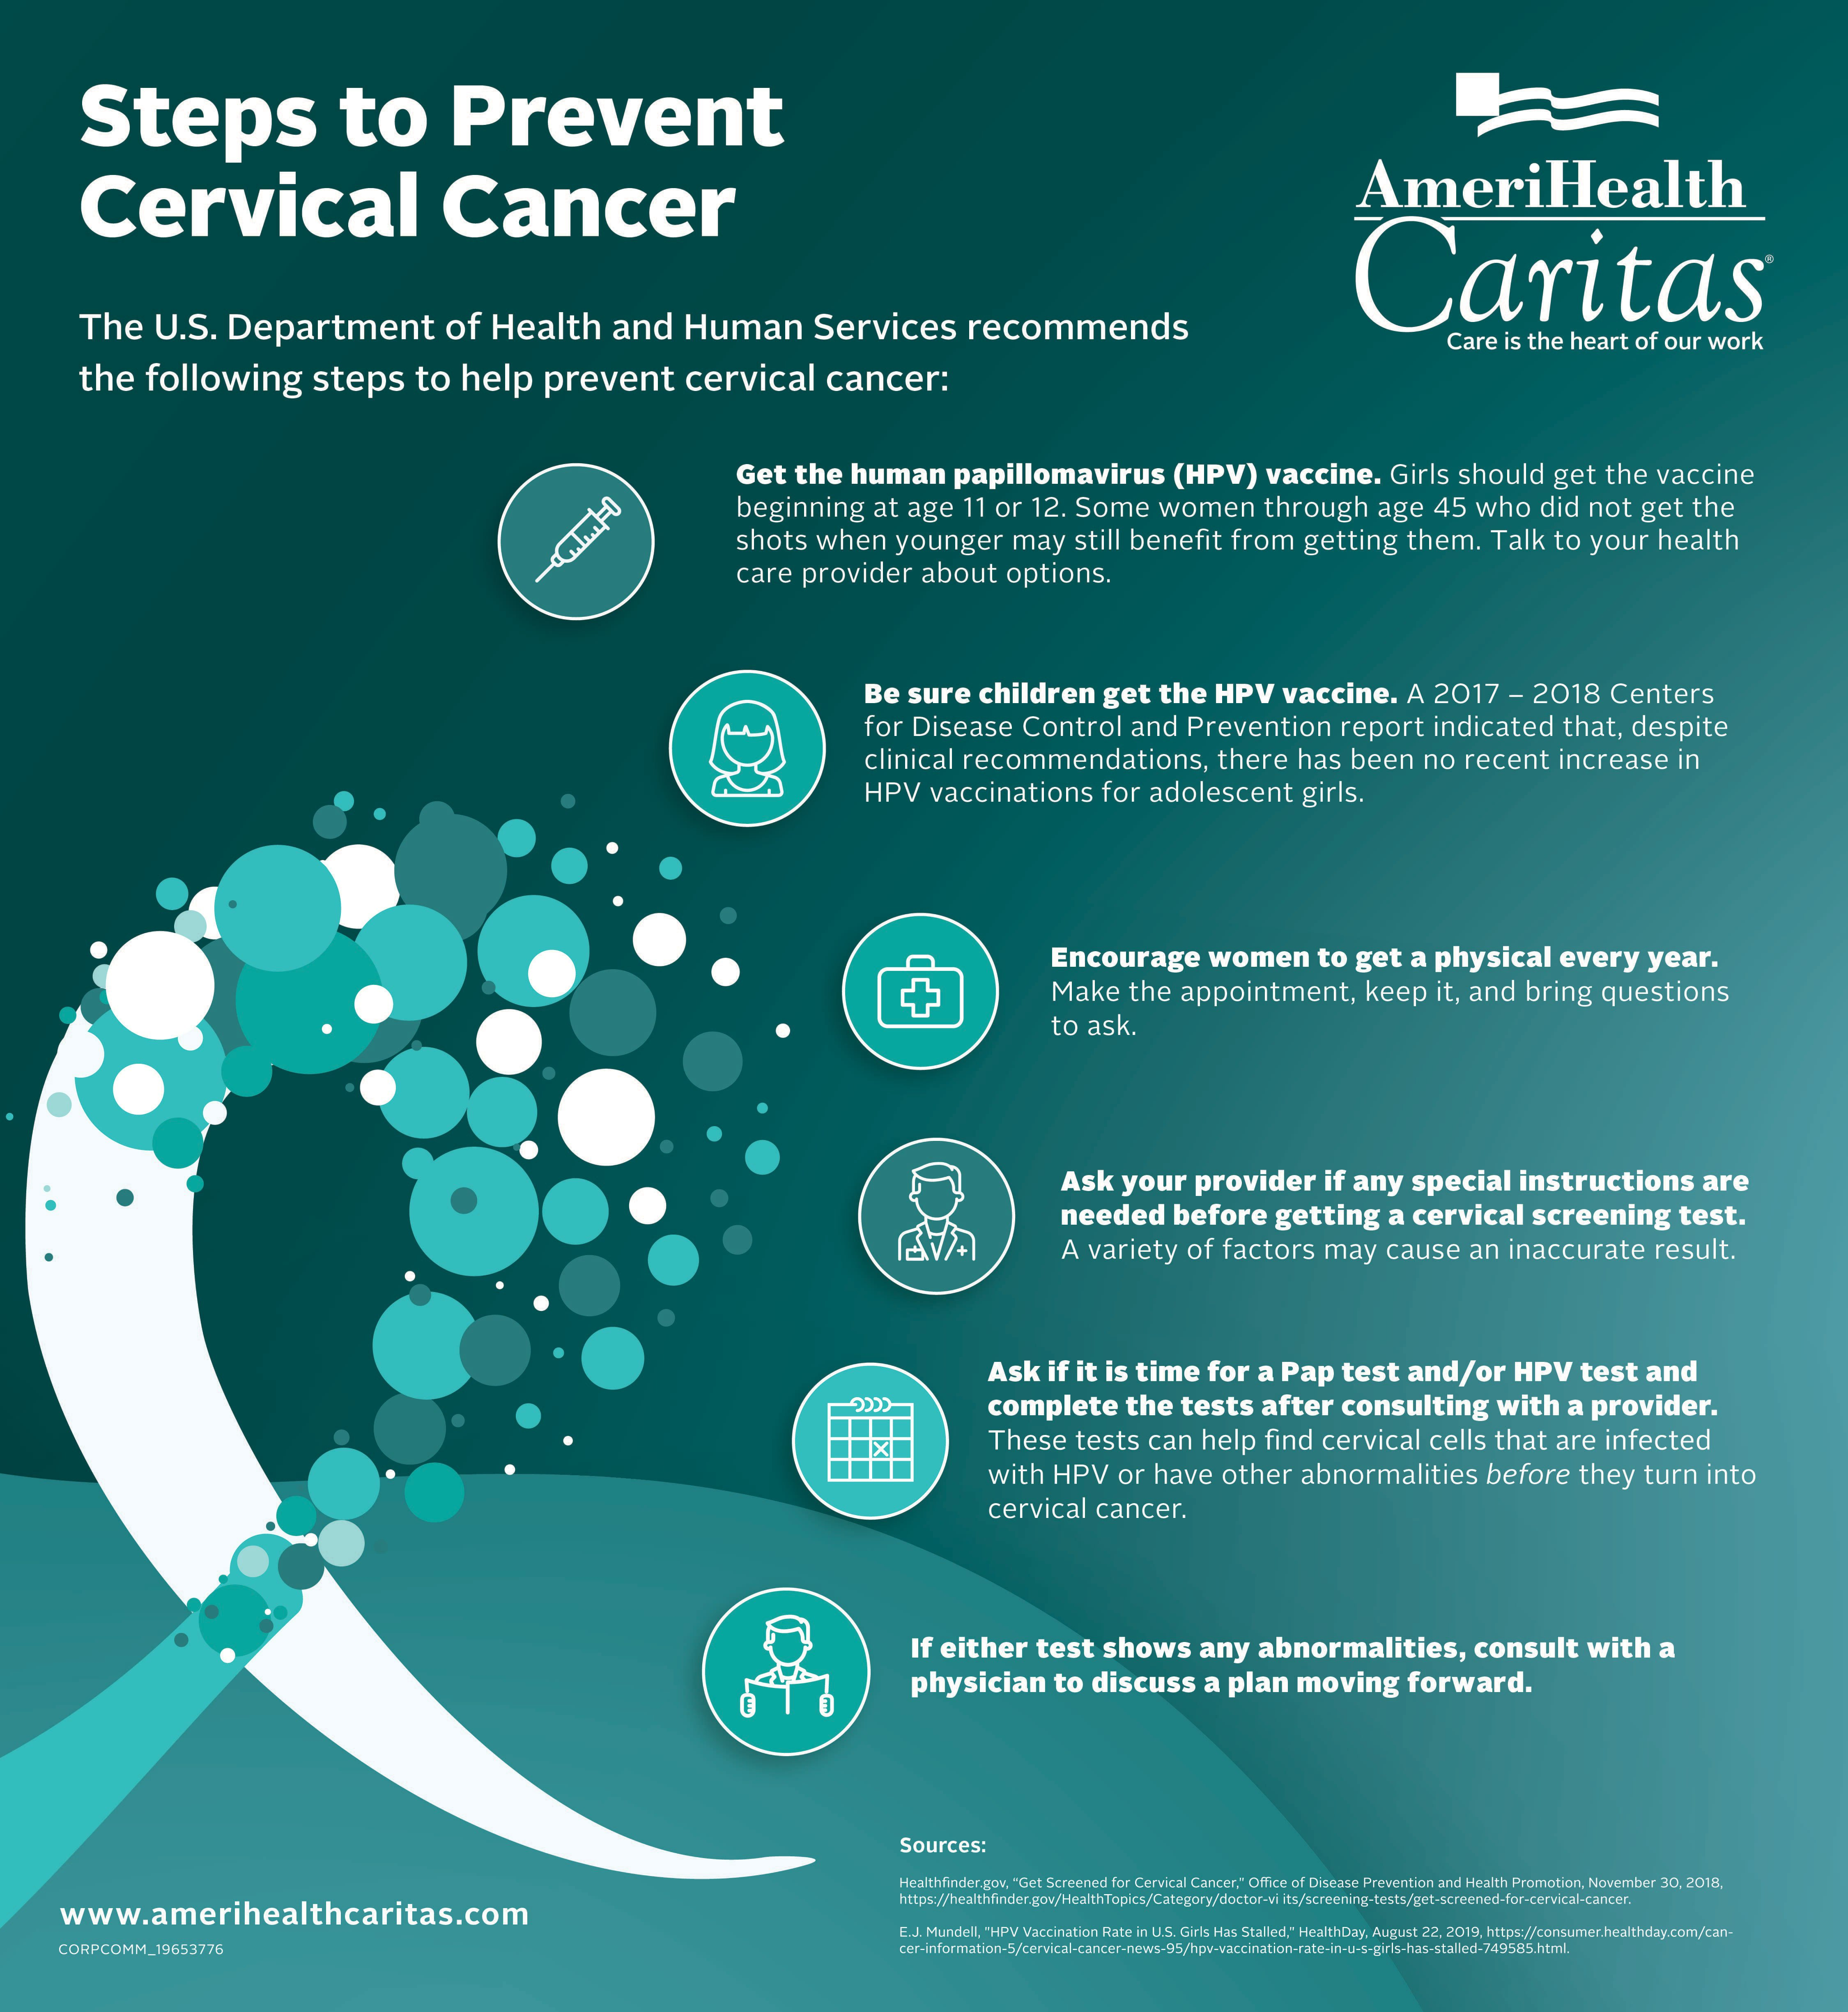 CORPCOMM_1cervical_cancer_infographic